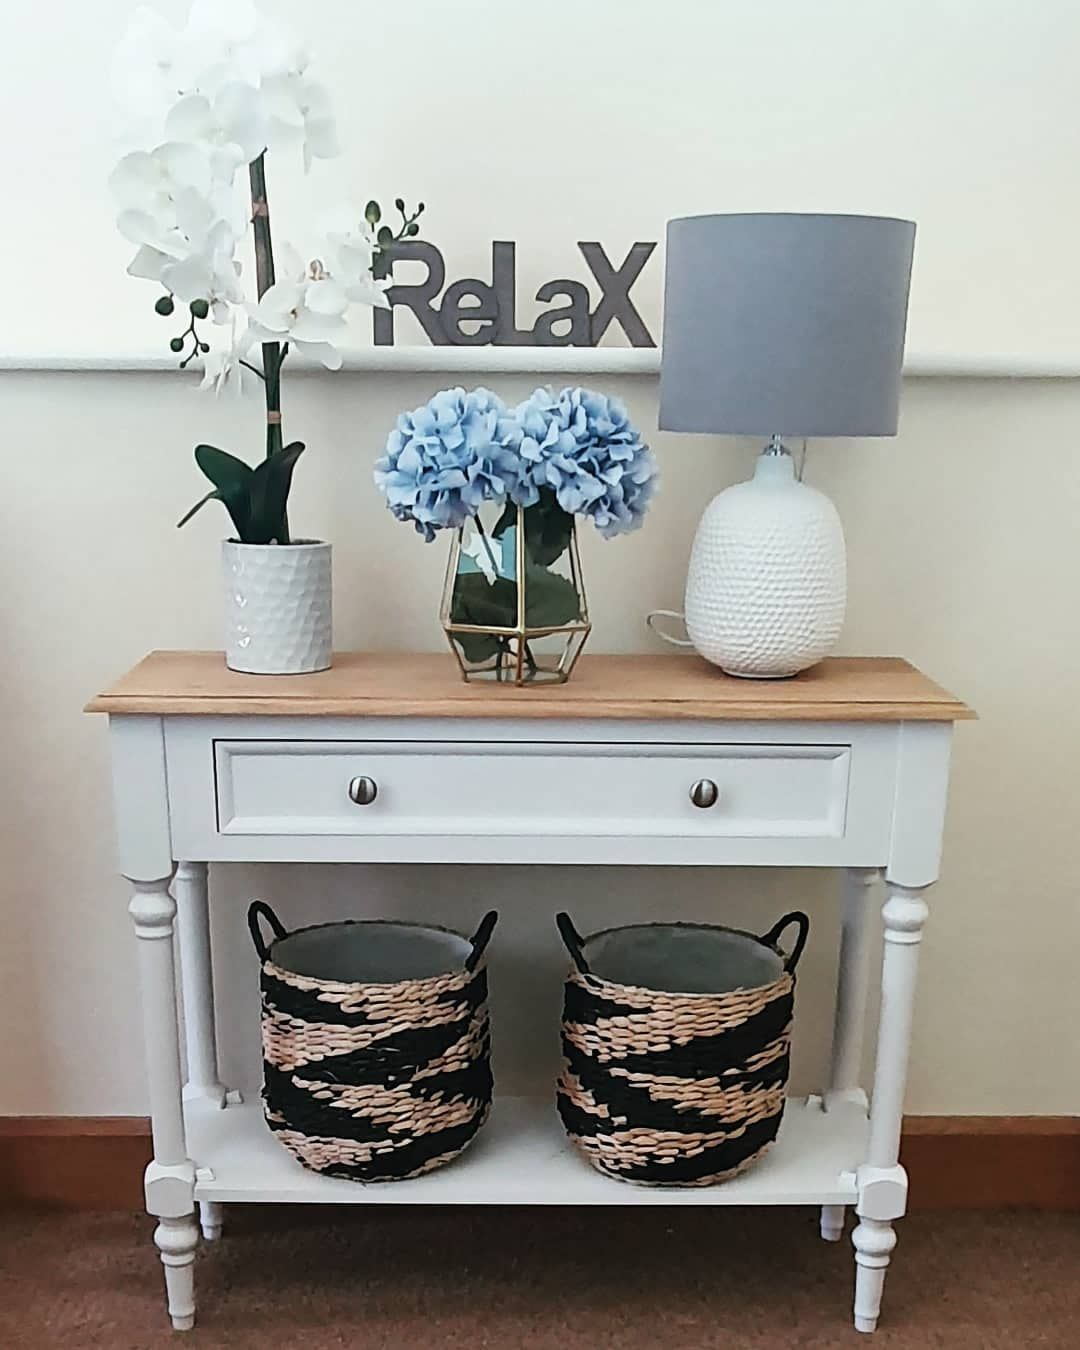 This empty landing area is now beautifully decorated with a white console  and decor accessories in a calming colour scheme ideal for the sleeping area of the house. . . . . . #homedecoracessorize #homedecorinspiration #interiordecorating #interiordecor #homemagazine #dressyourhome #instadecor #interiordecorating #interiordesignerlife #instalifestyle #consoletabledecor #flowervases #tablelamps #relax #blueflowers #rattanbasket #homesweethome #interiors #houseinterior